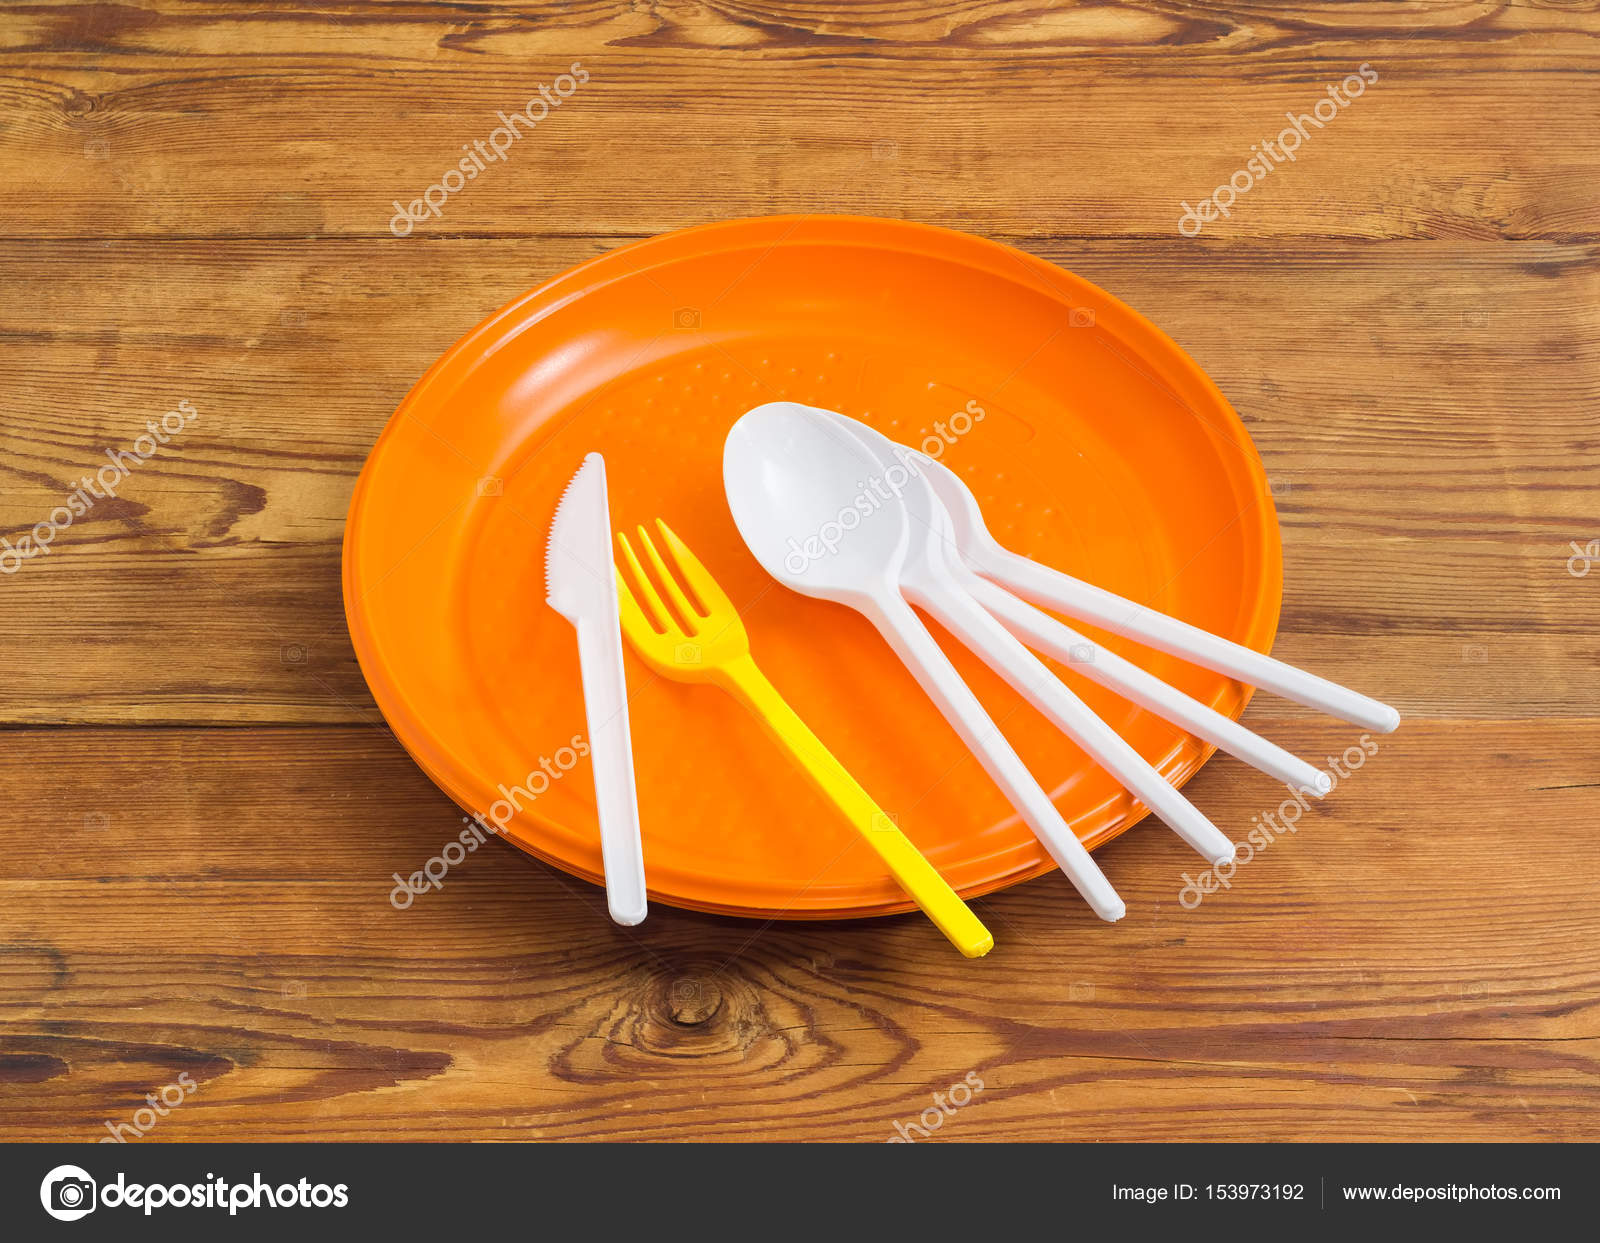 Several disposable plastic white spoons knife yellow fork on the pile of the orange plastic disposable plates on a surface of the old wooden planks ... & Disposable plastic plates spoons fork and knife on wooden surface ...